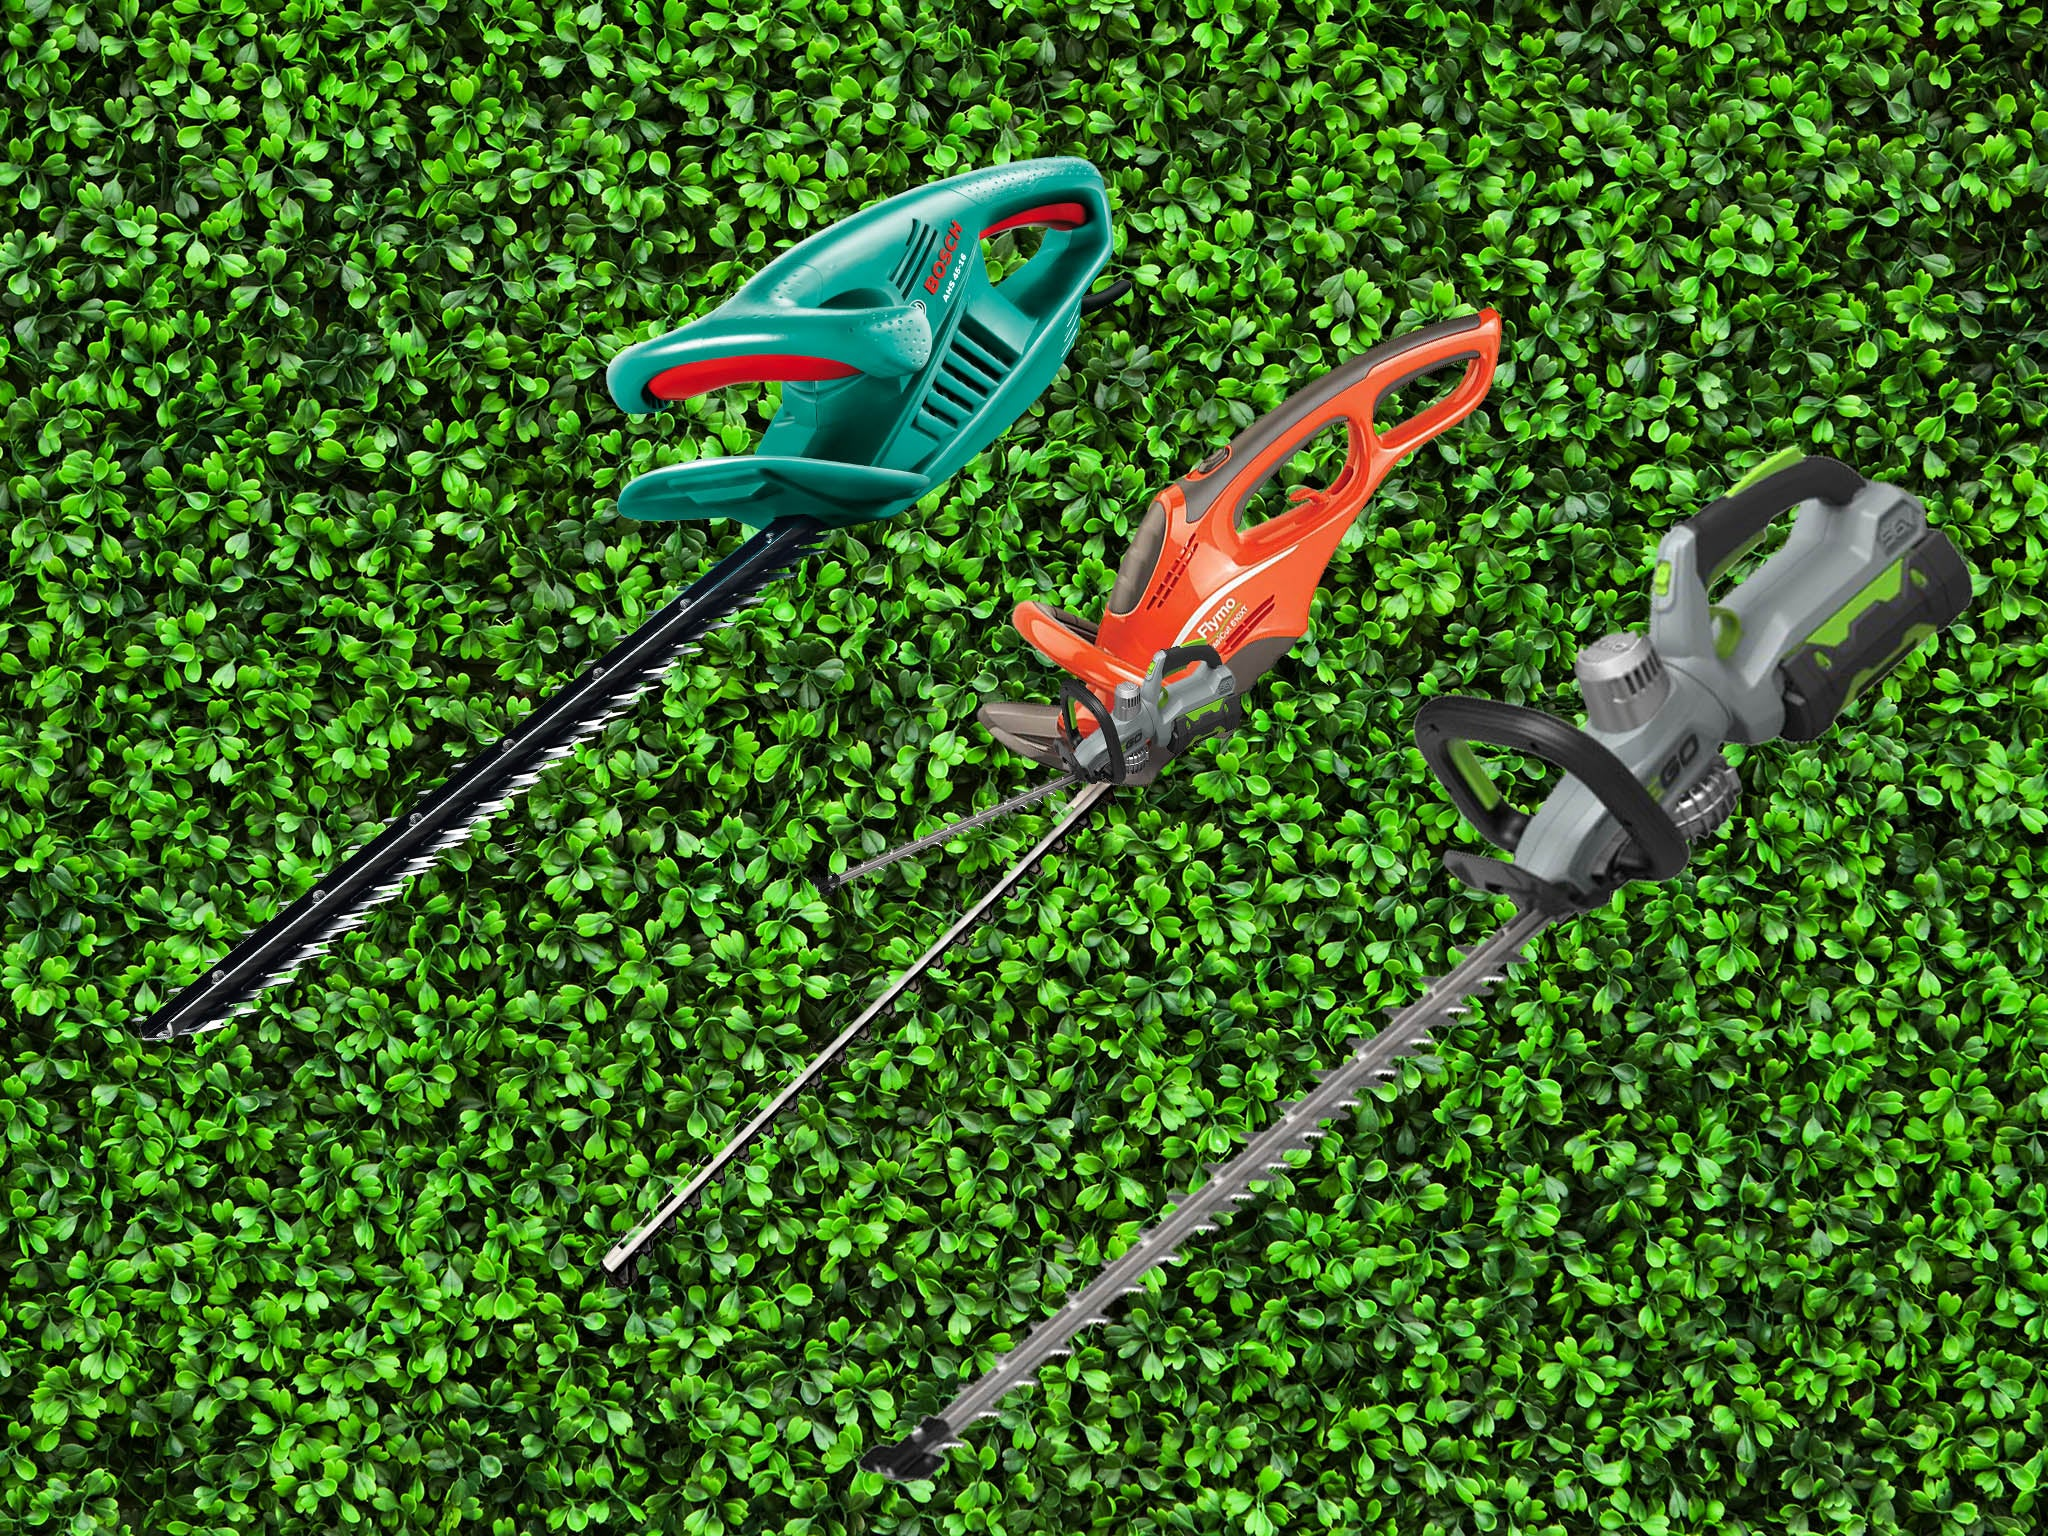 Garden Tools Portable Electric Grass Trimmer Handheld Grass Cutter Cleaner Machine Line Trimmer Garden Tools Telescopic Grass Trimmer High Quality And Inexpensive